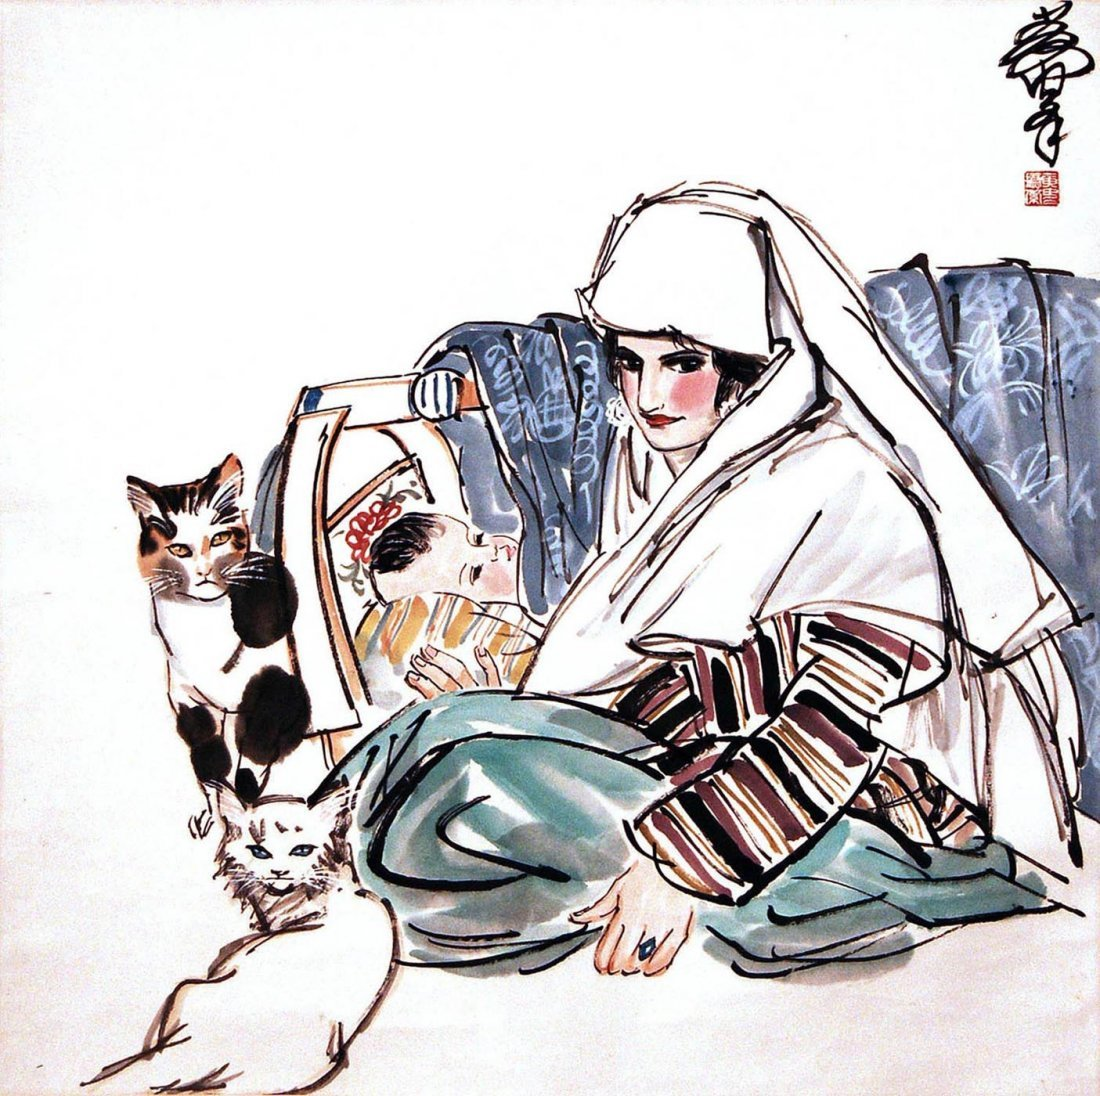 15: Huang Zhou - Uighur Mother and Child with Cats